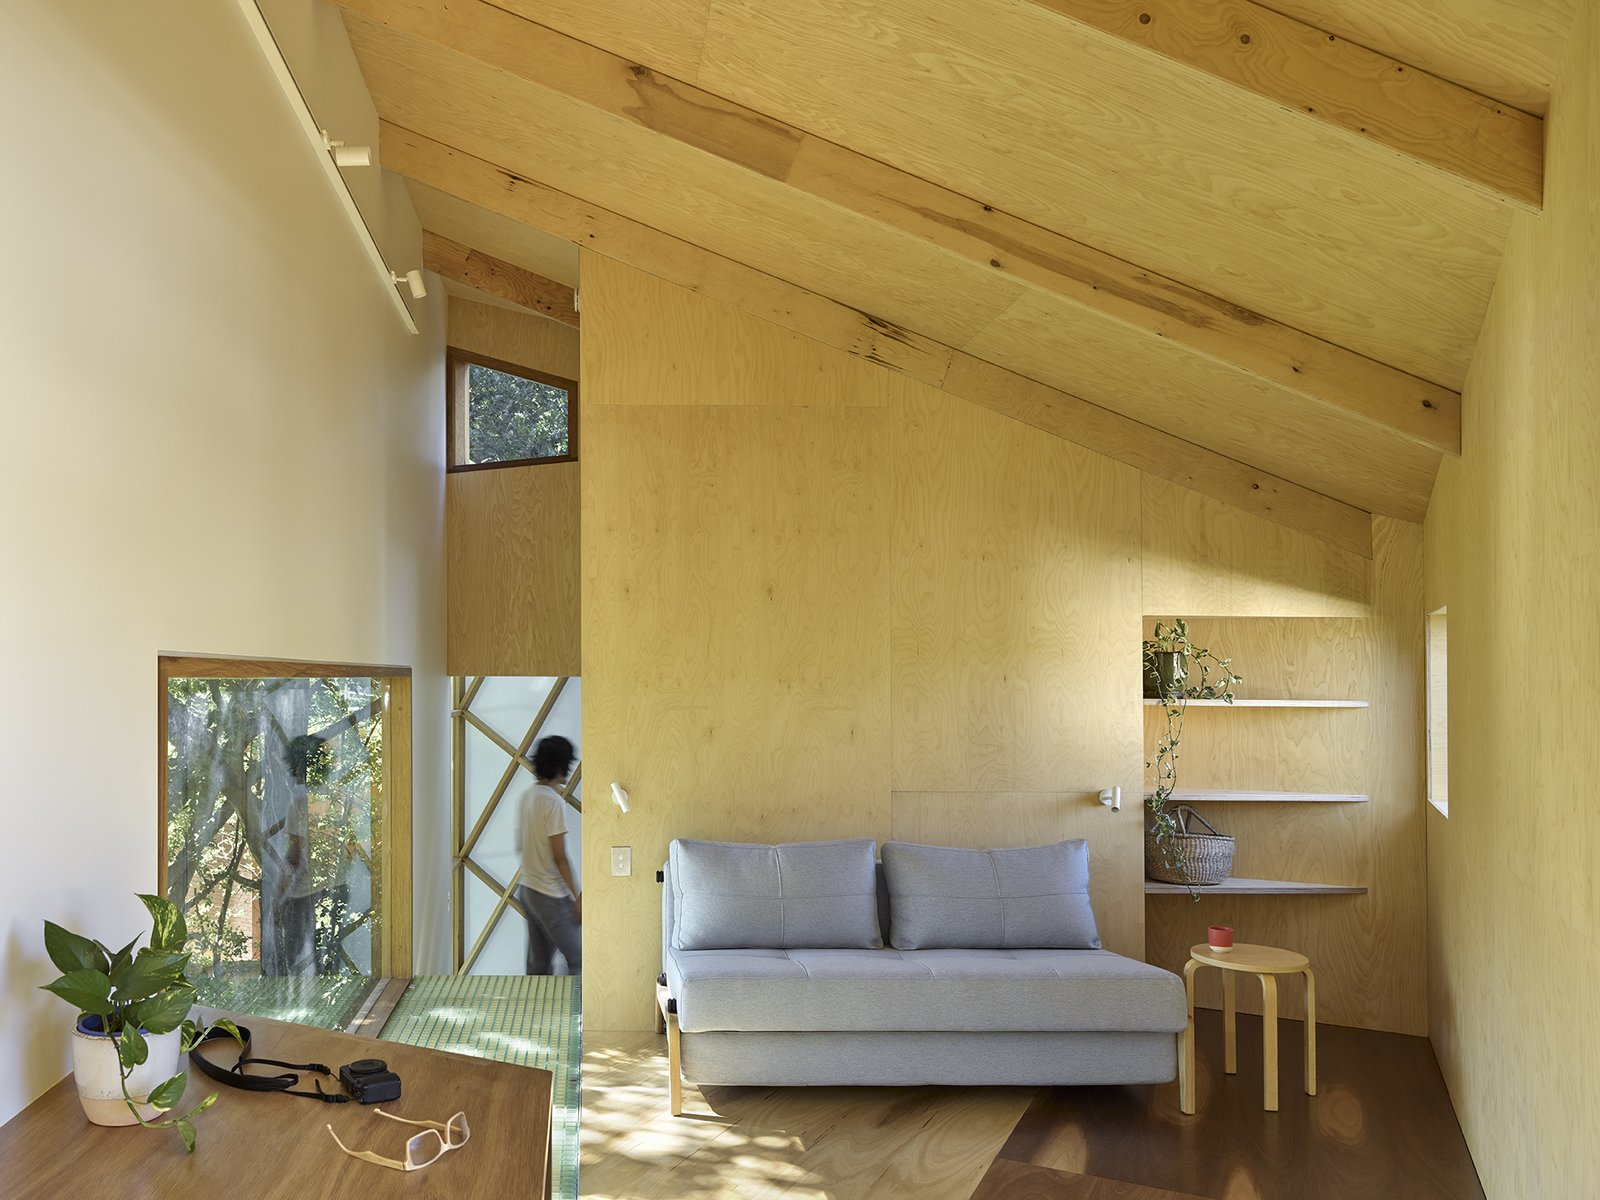 Living Room, End Tables, Sofa, Wall Lighting, Shelves, Track Lighting, and Medium Hardwood Floor The interior of the tree house is made up of a set of informal spaces, including a loft on the top floor.  Photo 7 of 11 in This Triangular Tree House Adds Whimsy to a Backyard in Australia